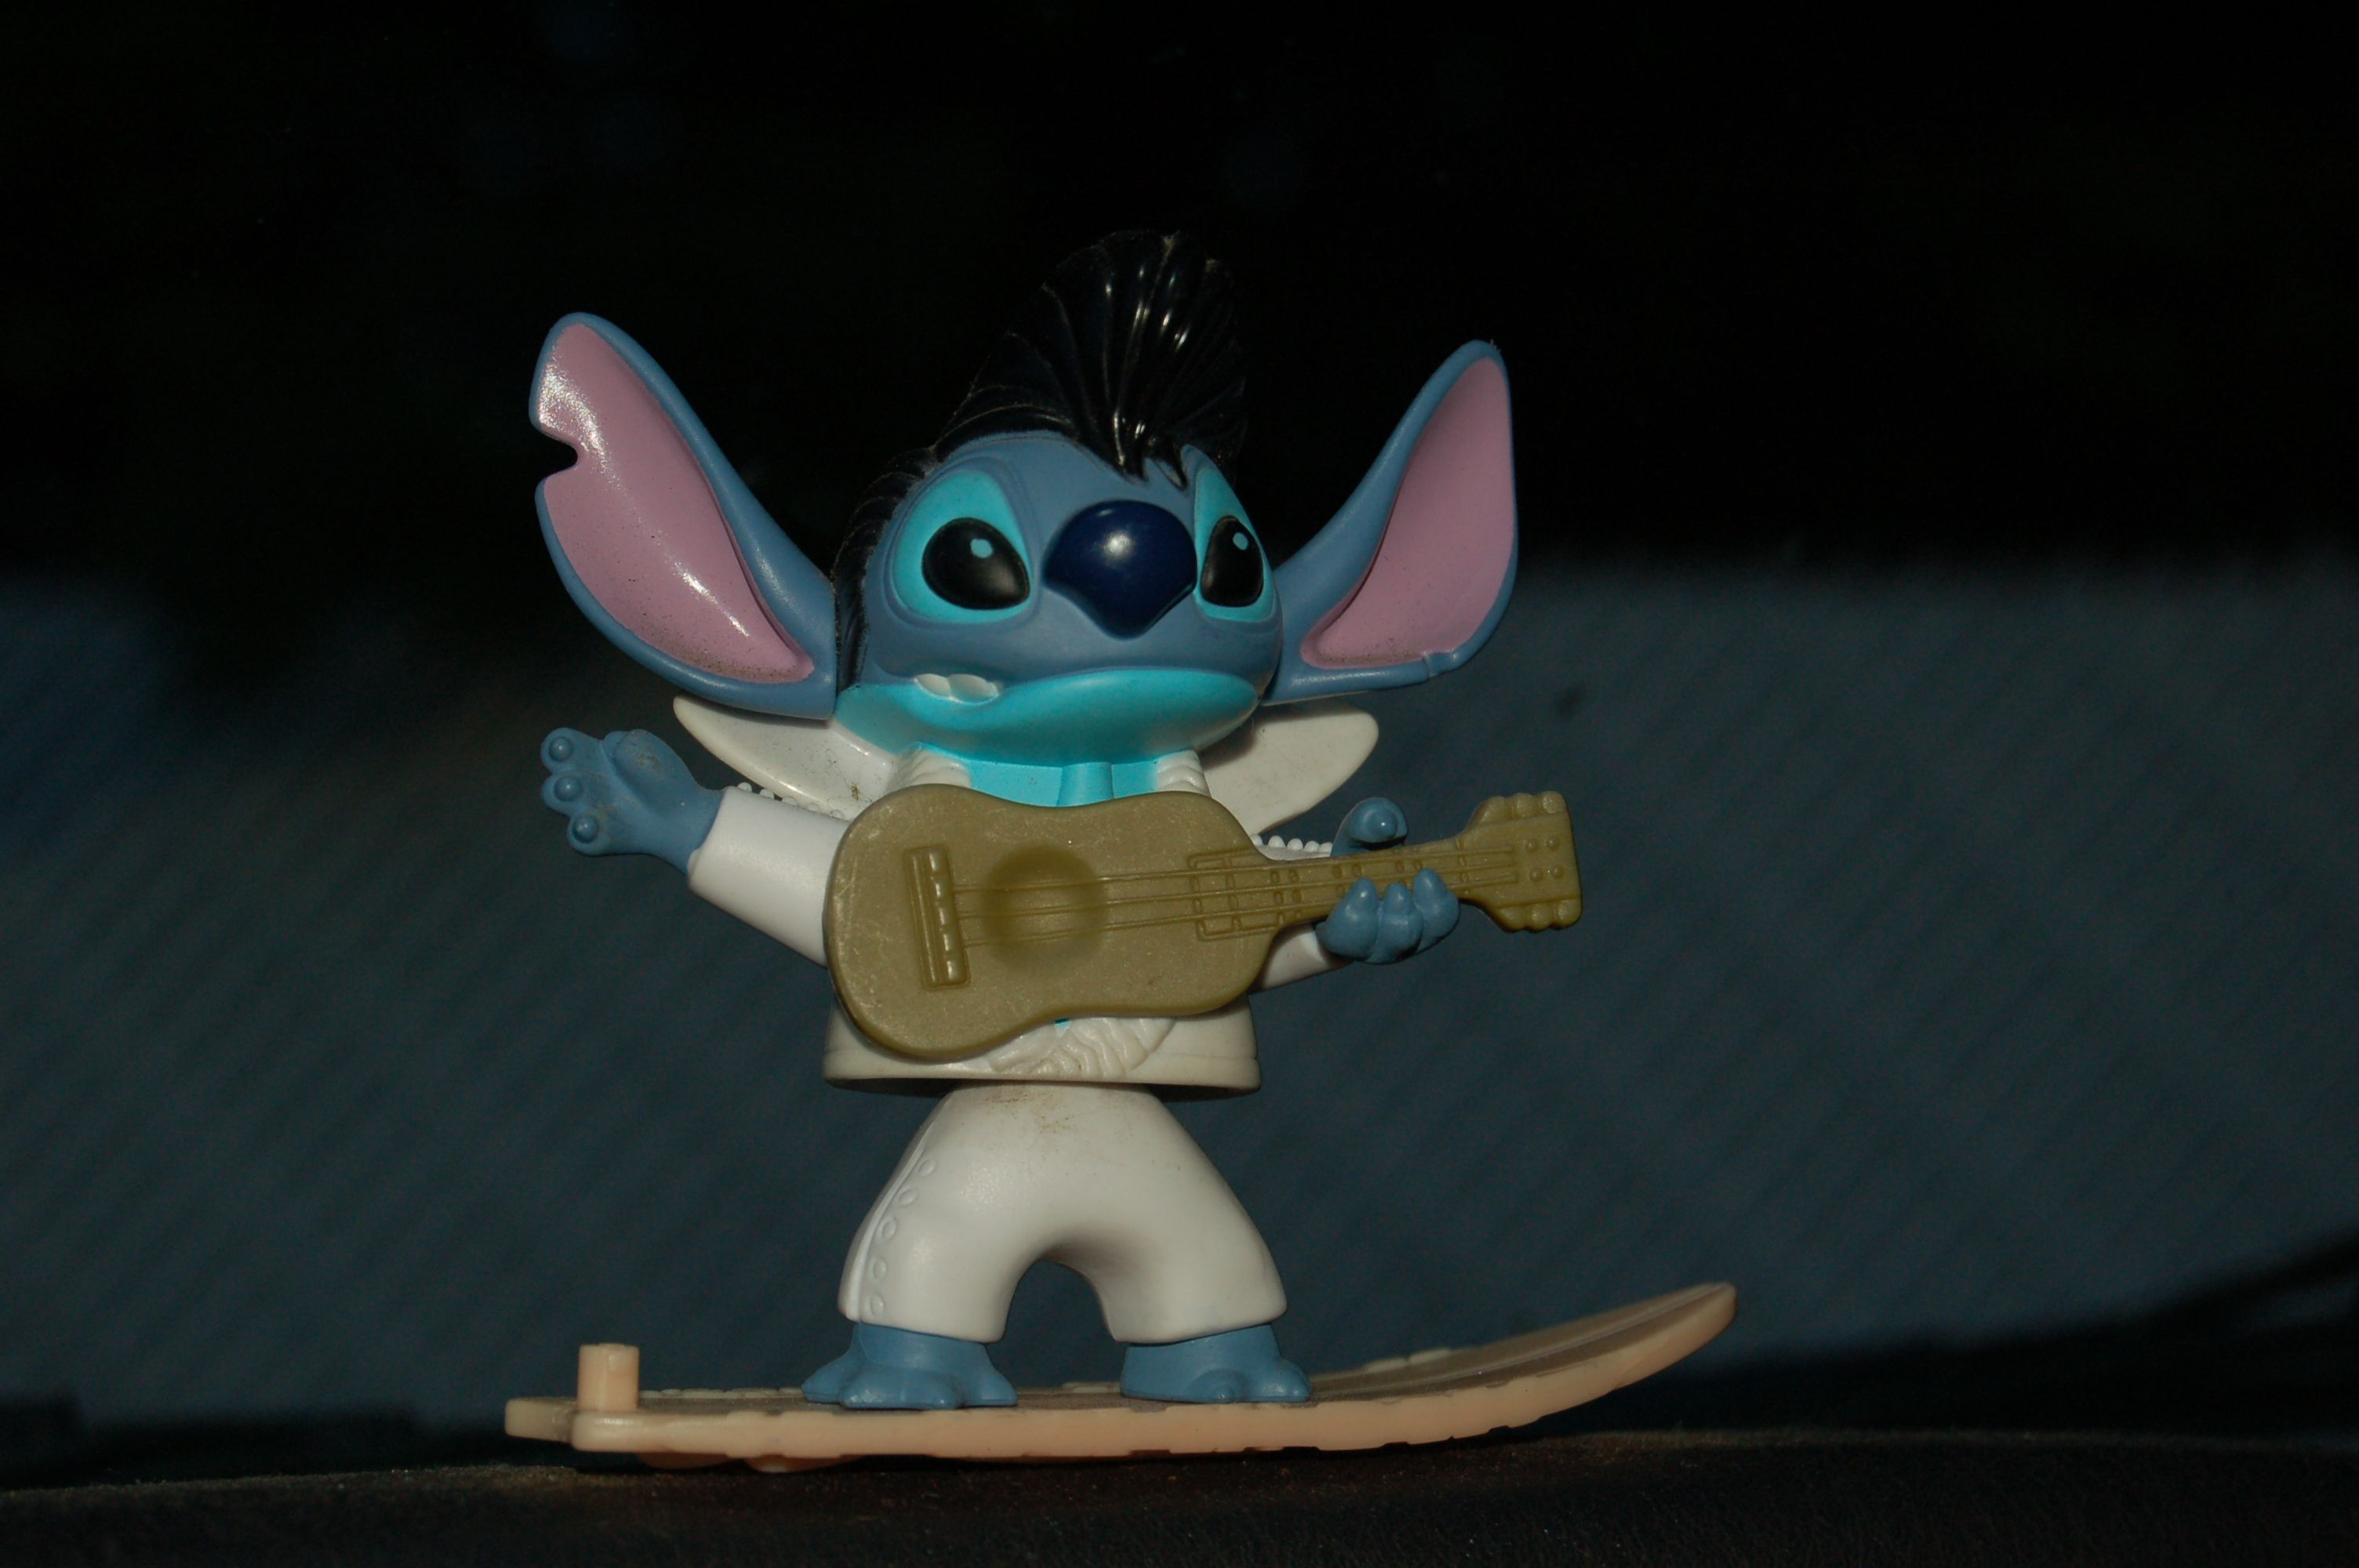 Stitch as Elvis from Lilo & Stitch This one's been riding